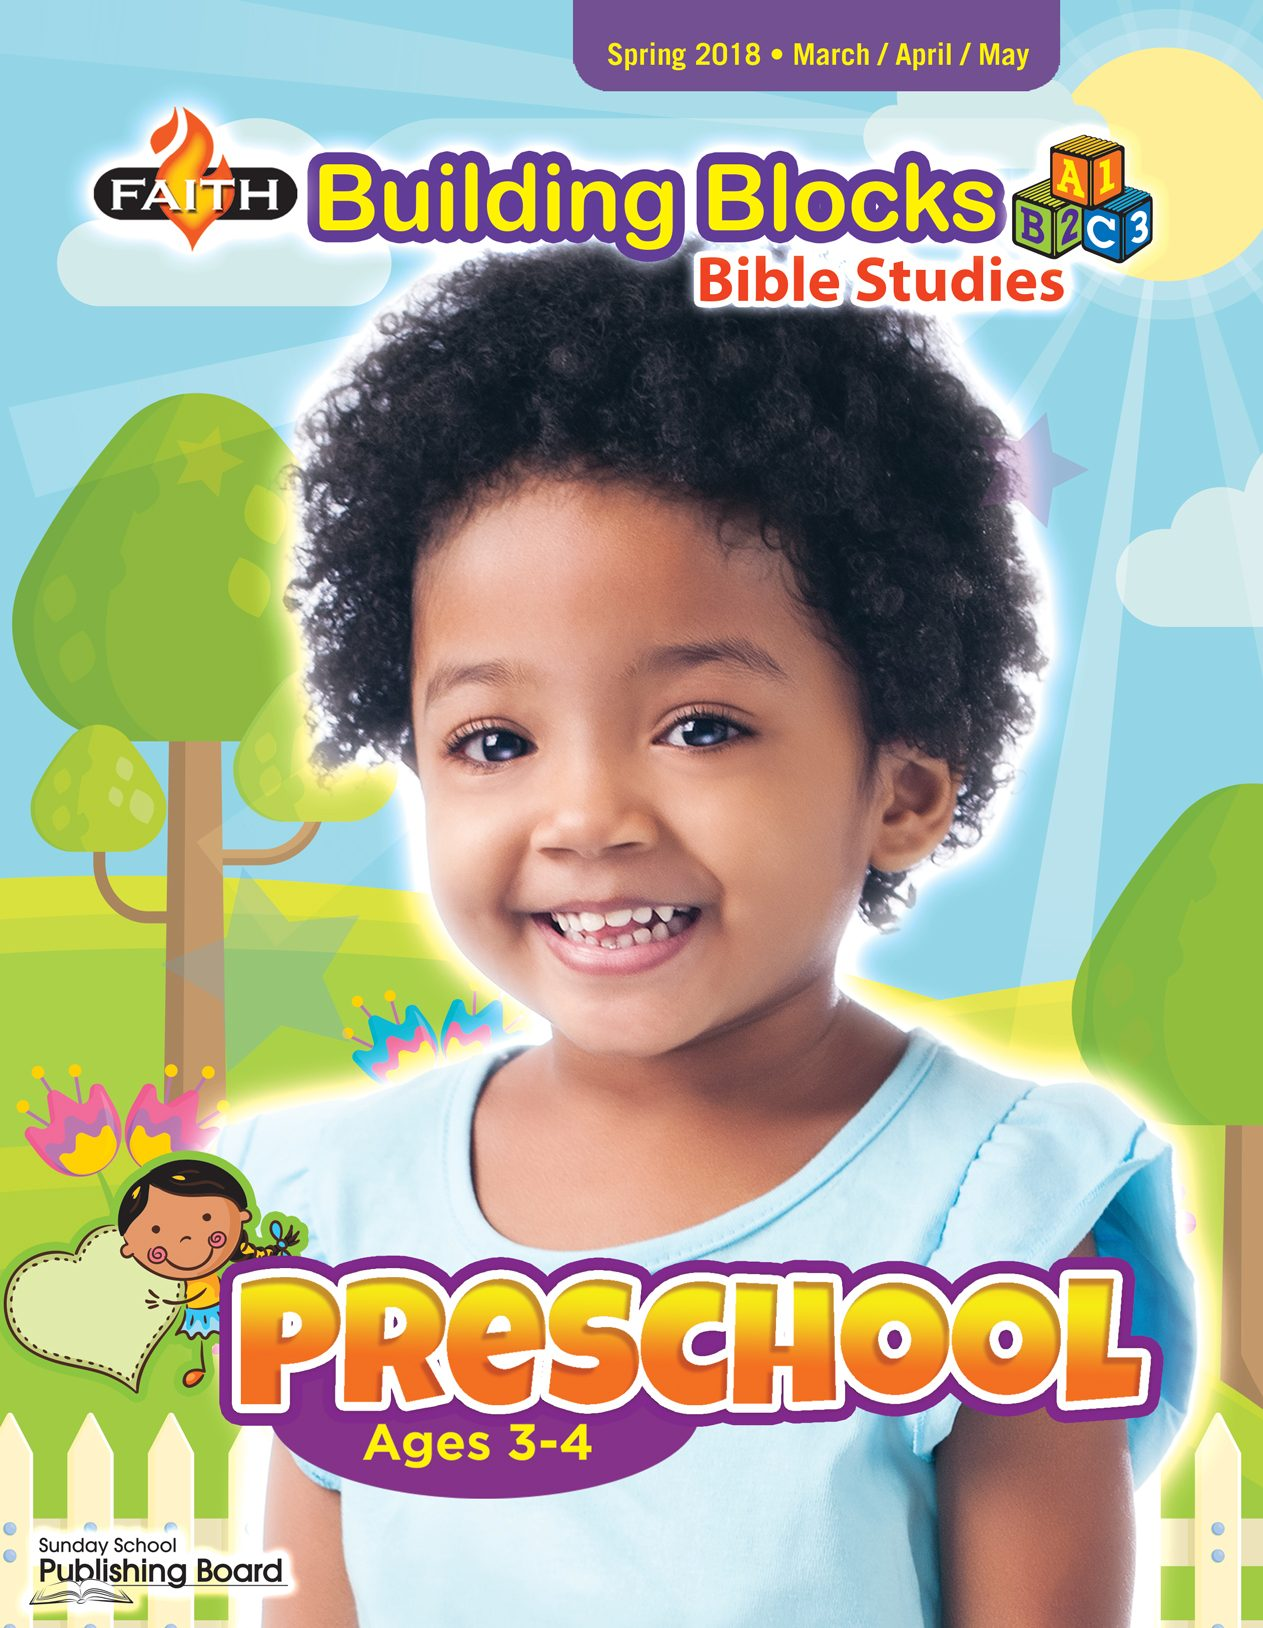 Faith Building Blocks Bible Studies, Preschool for Ages 3-4 (Spring 2018)-Digital Edition